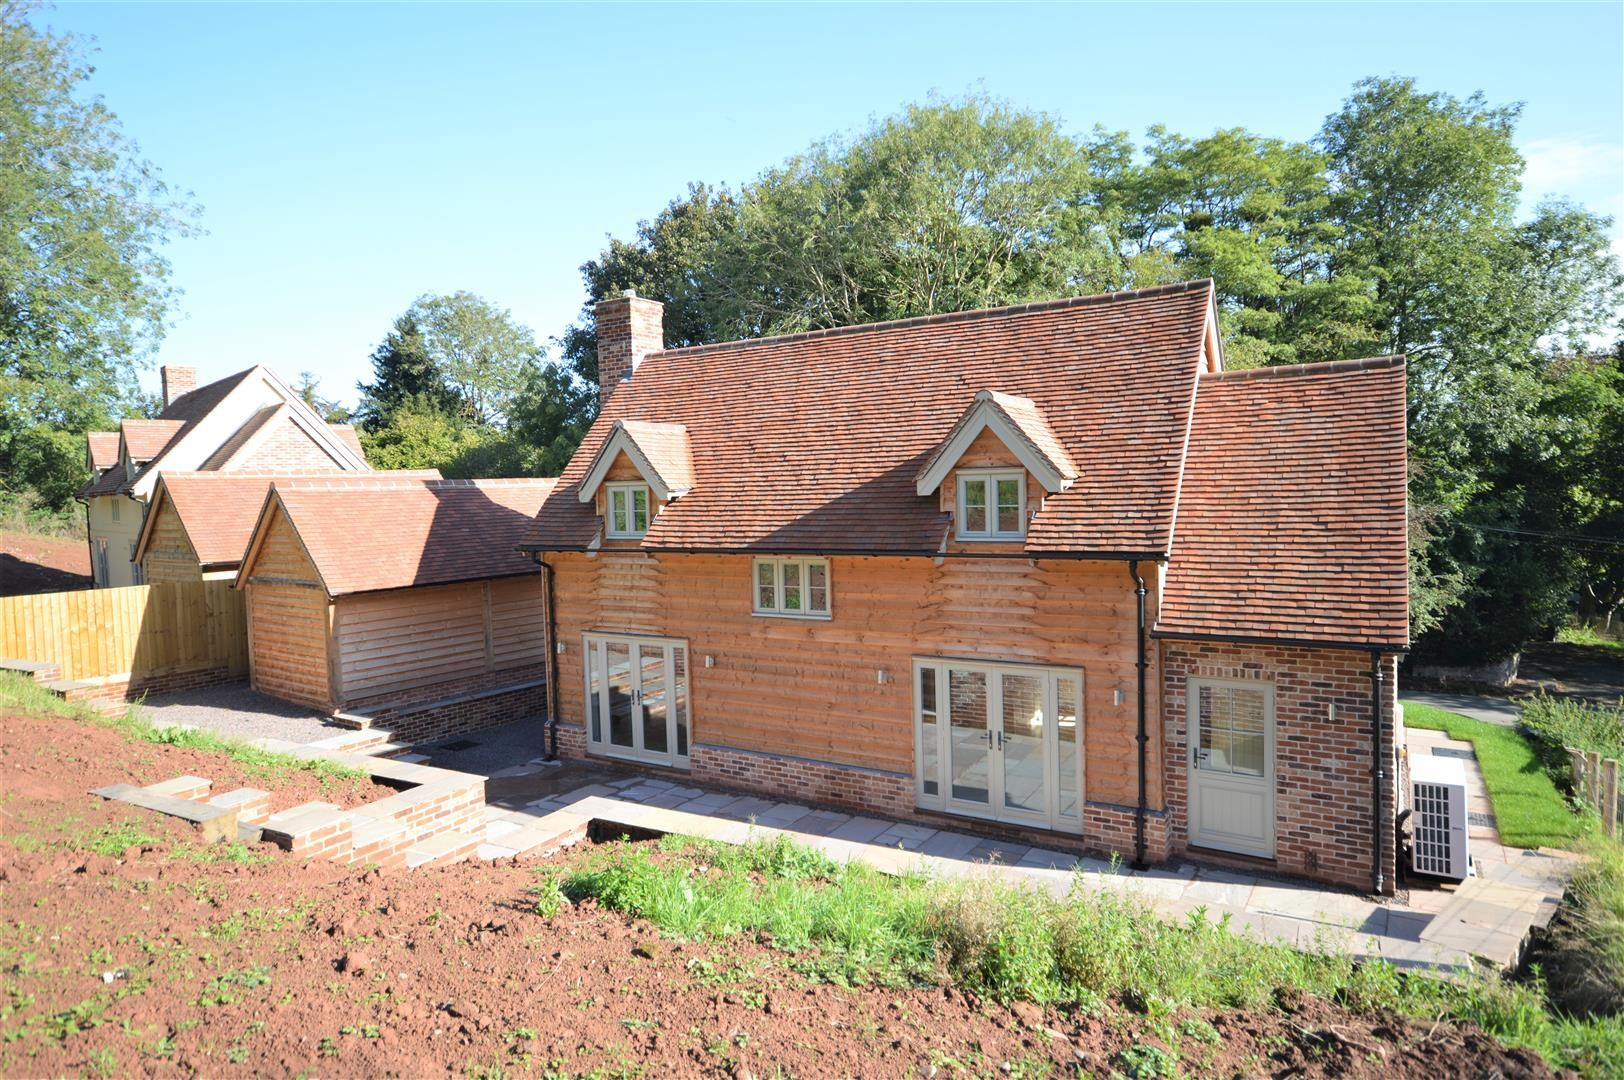 3 bed detached for sale in Dilwyn 16